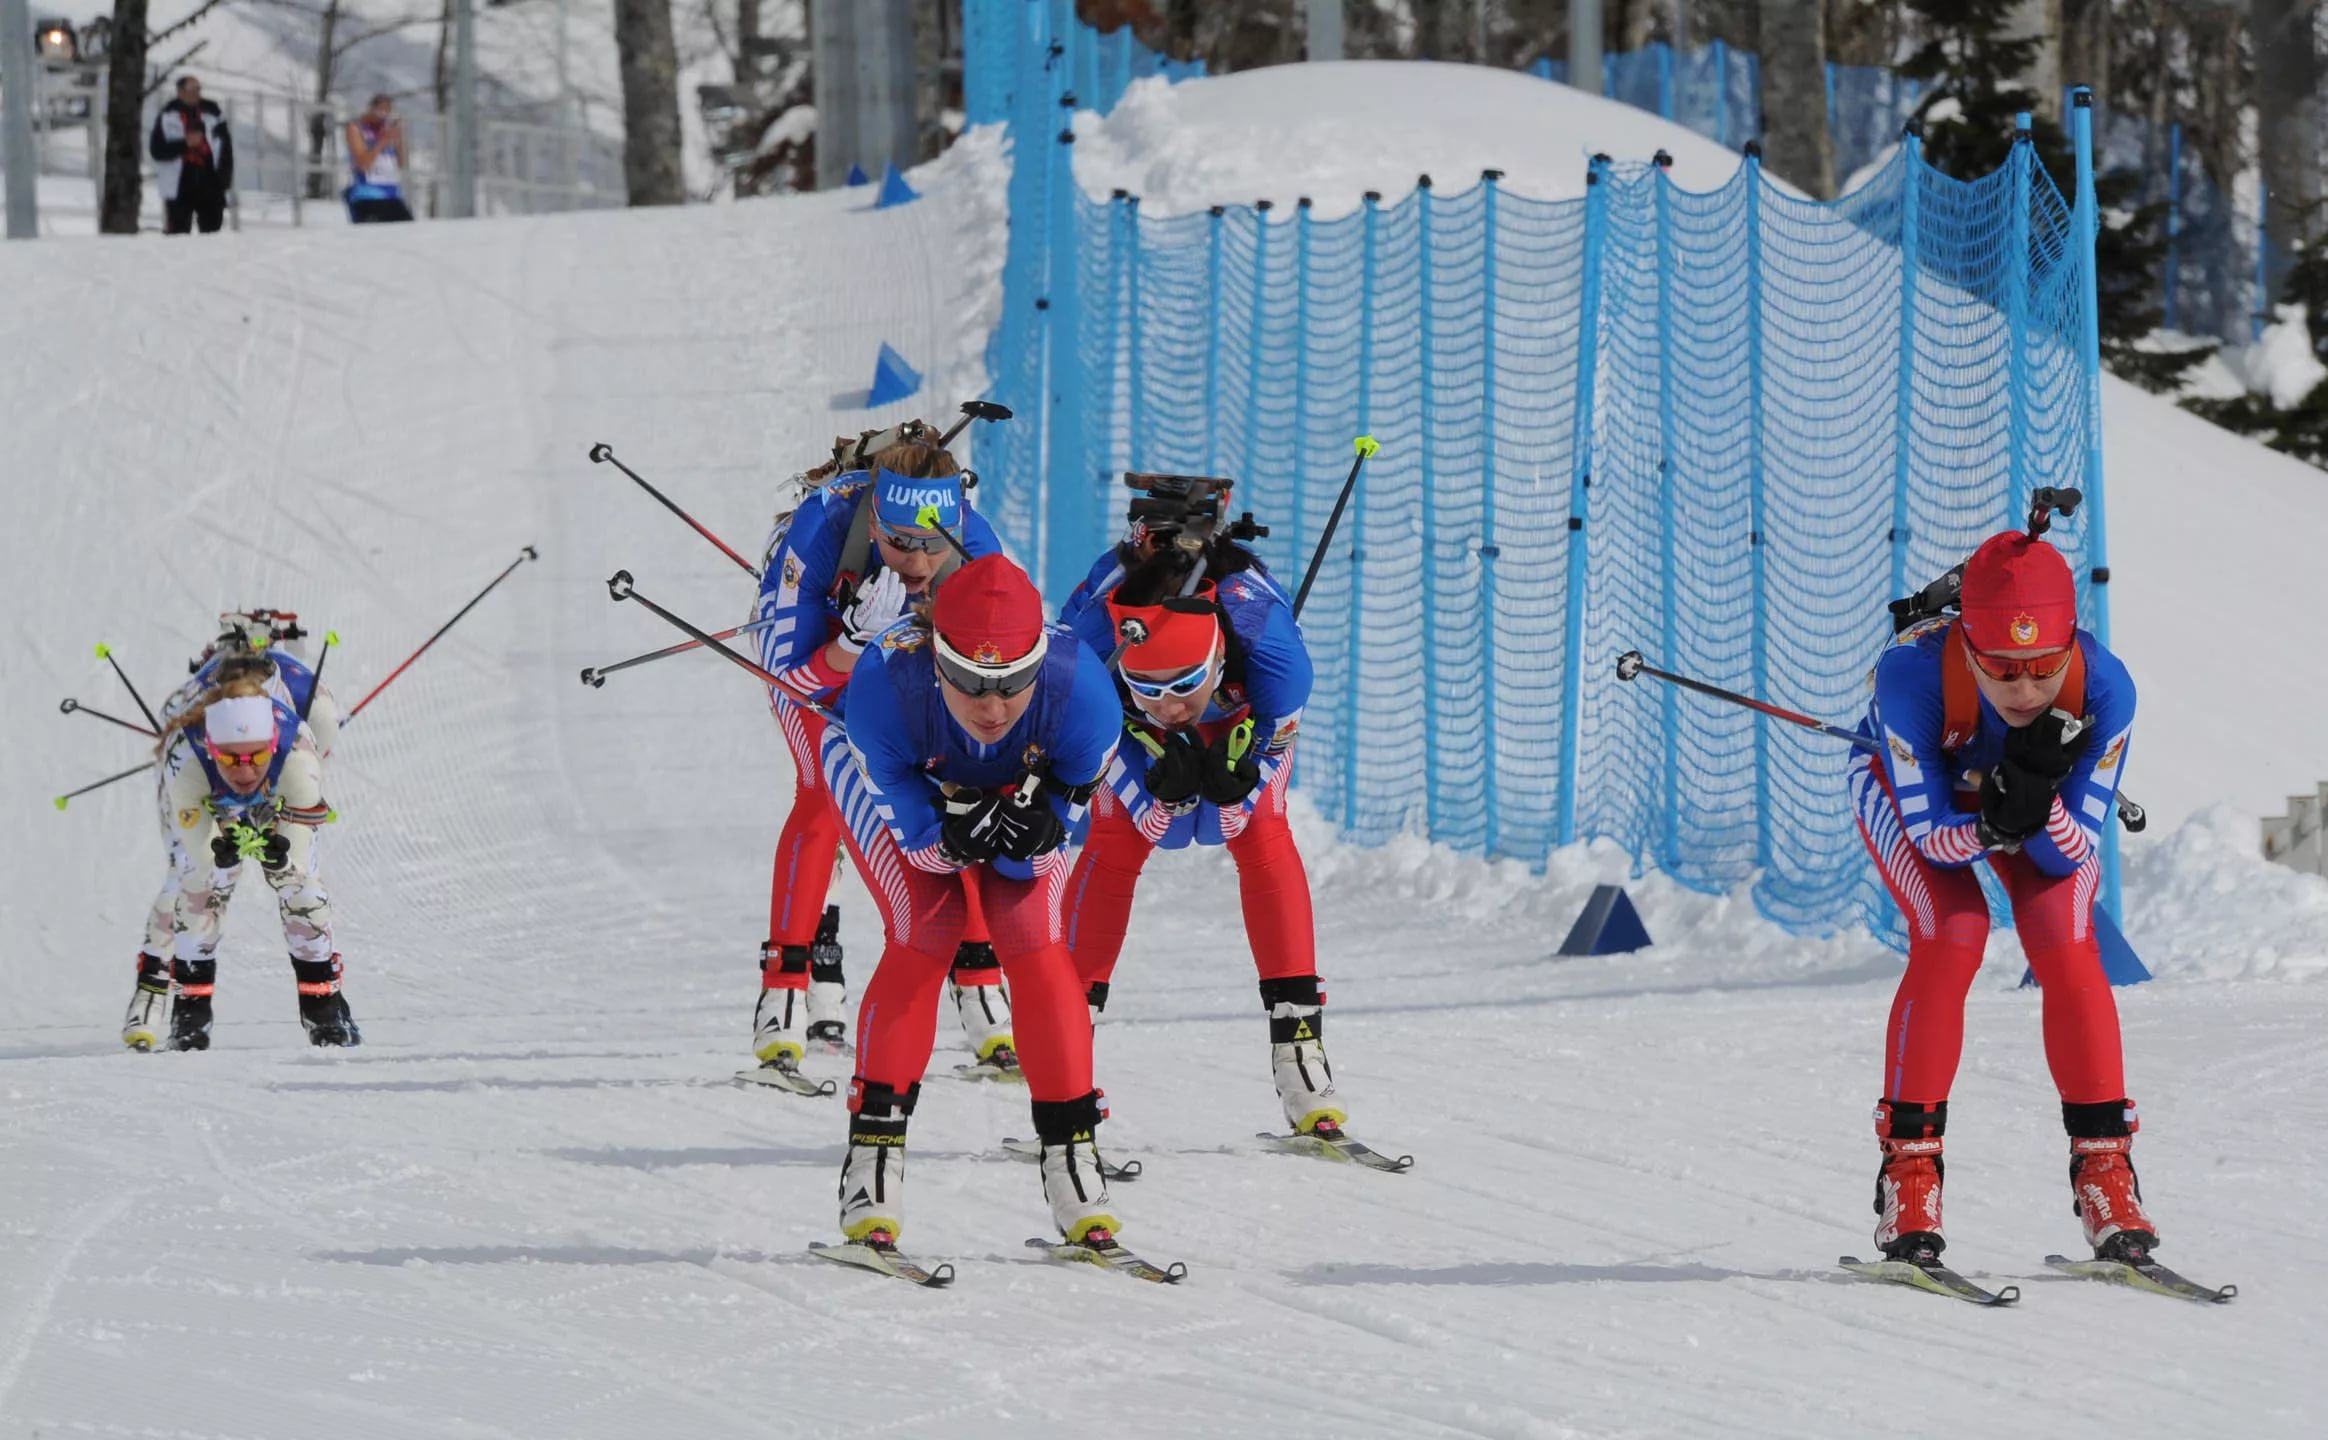 Biathlon Wallpaper 19   2328 X 1440 stmednet 2328x1440